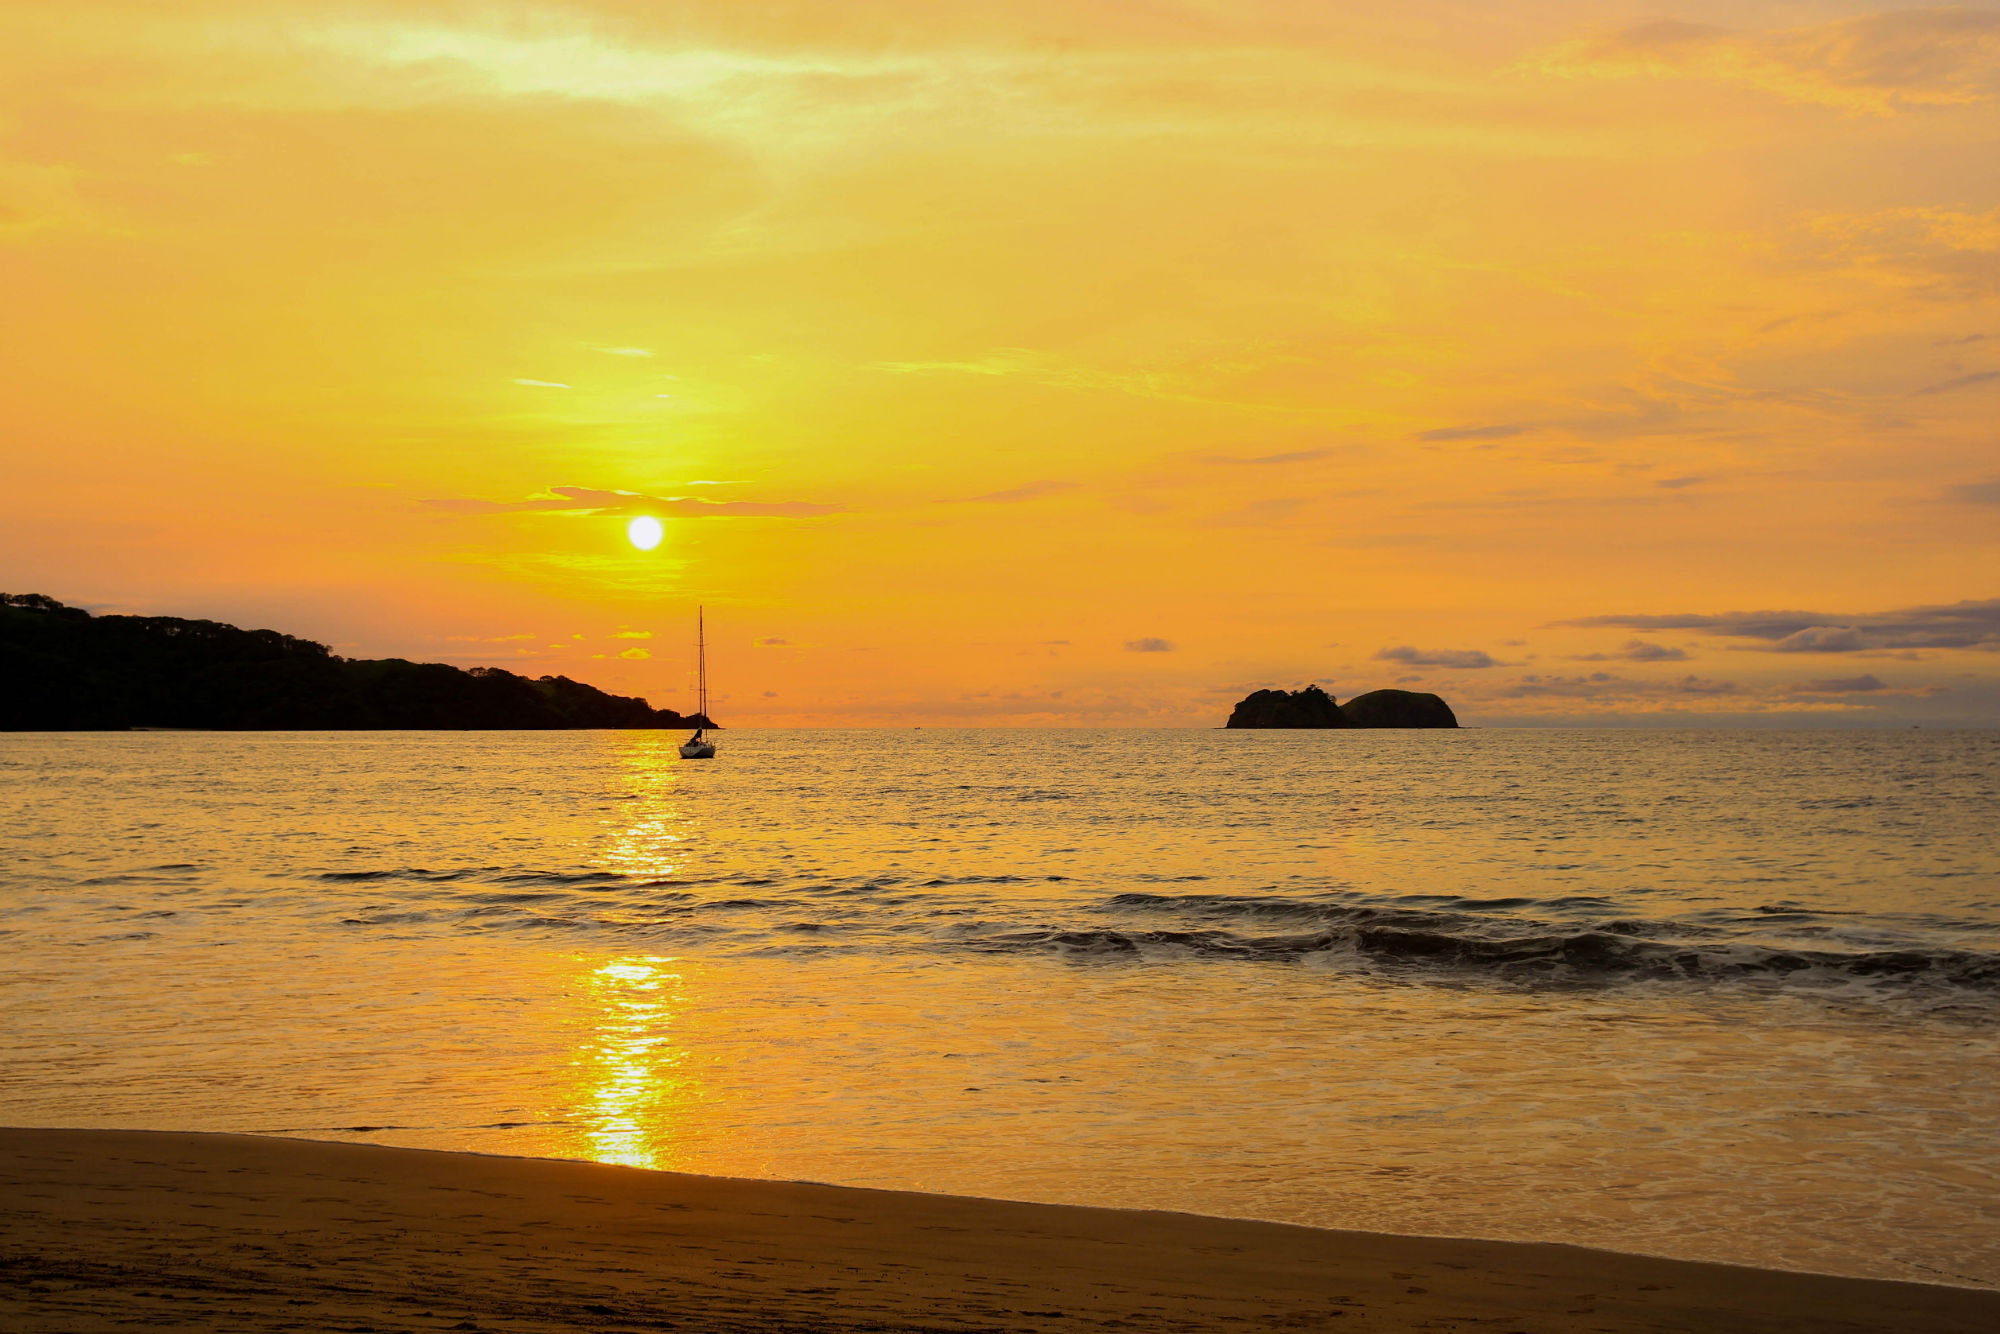 A Sail Boat and Sunset from Playa Hermosa, Costa Rica